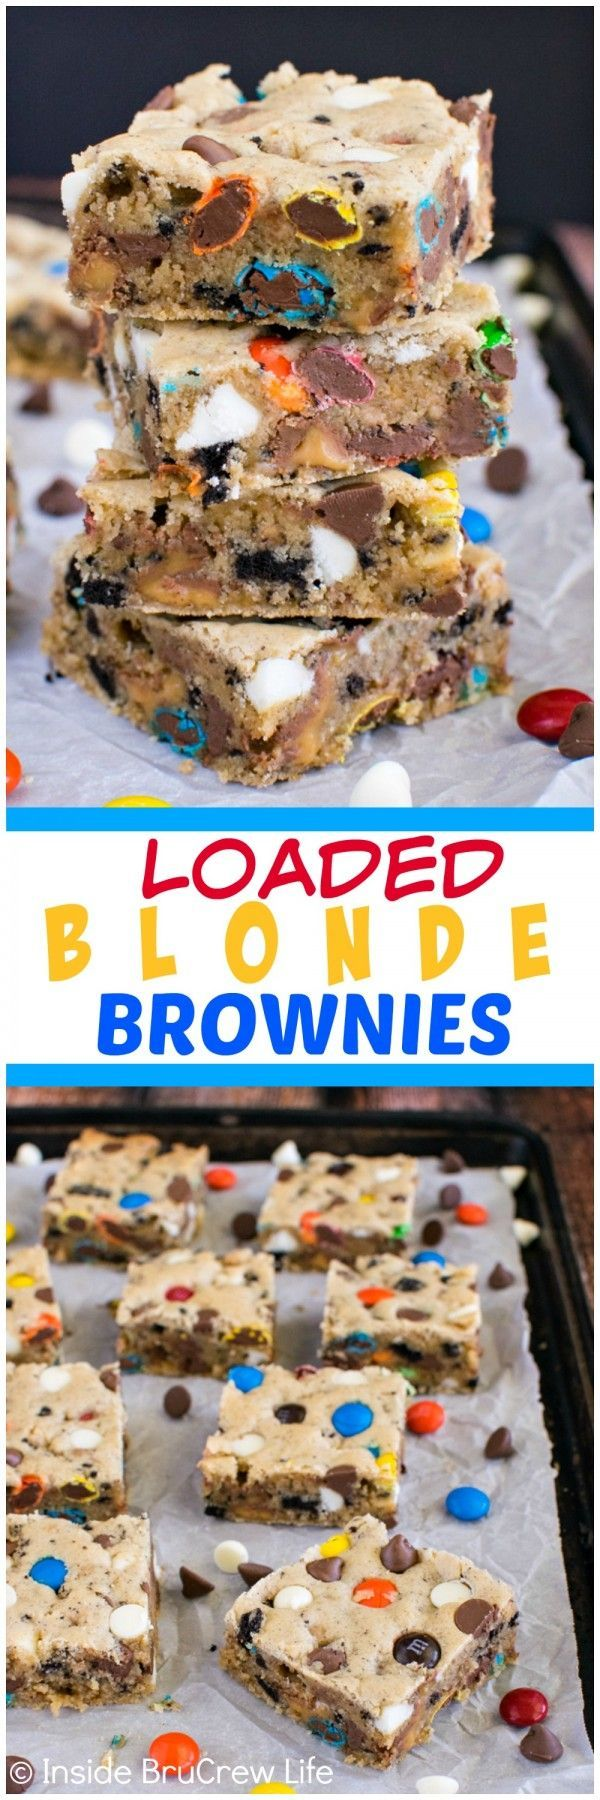 Loaded Blonde Brownies - adding lots of extra candy and cookies makes these brownies disappear in a hurry!  Awesome dessert recipe!